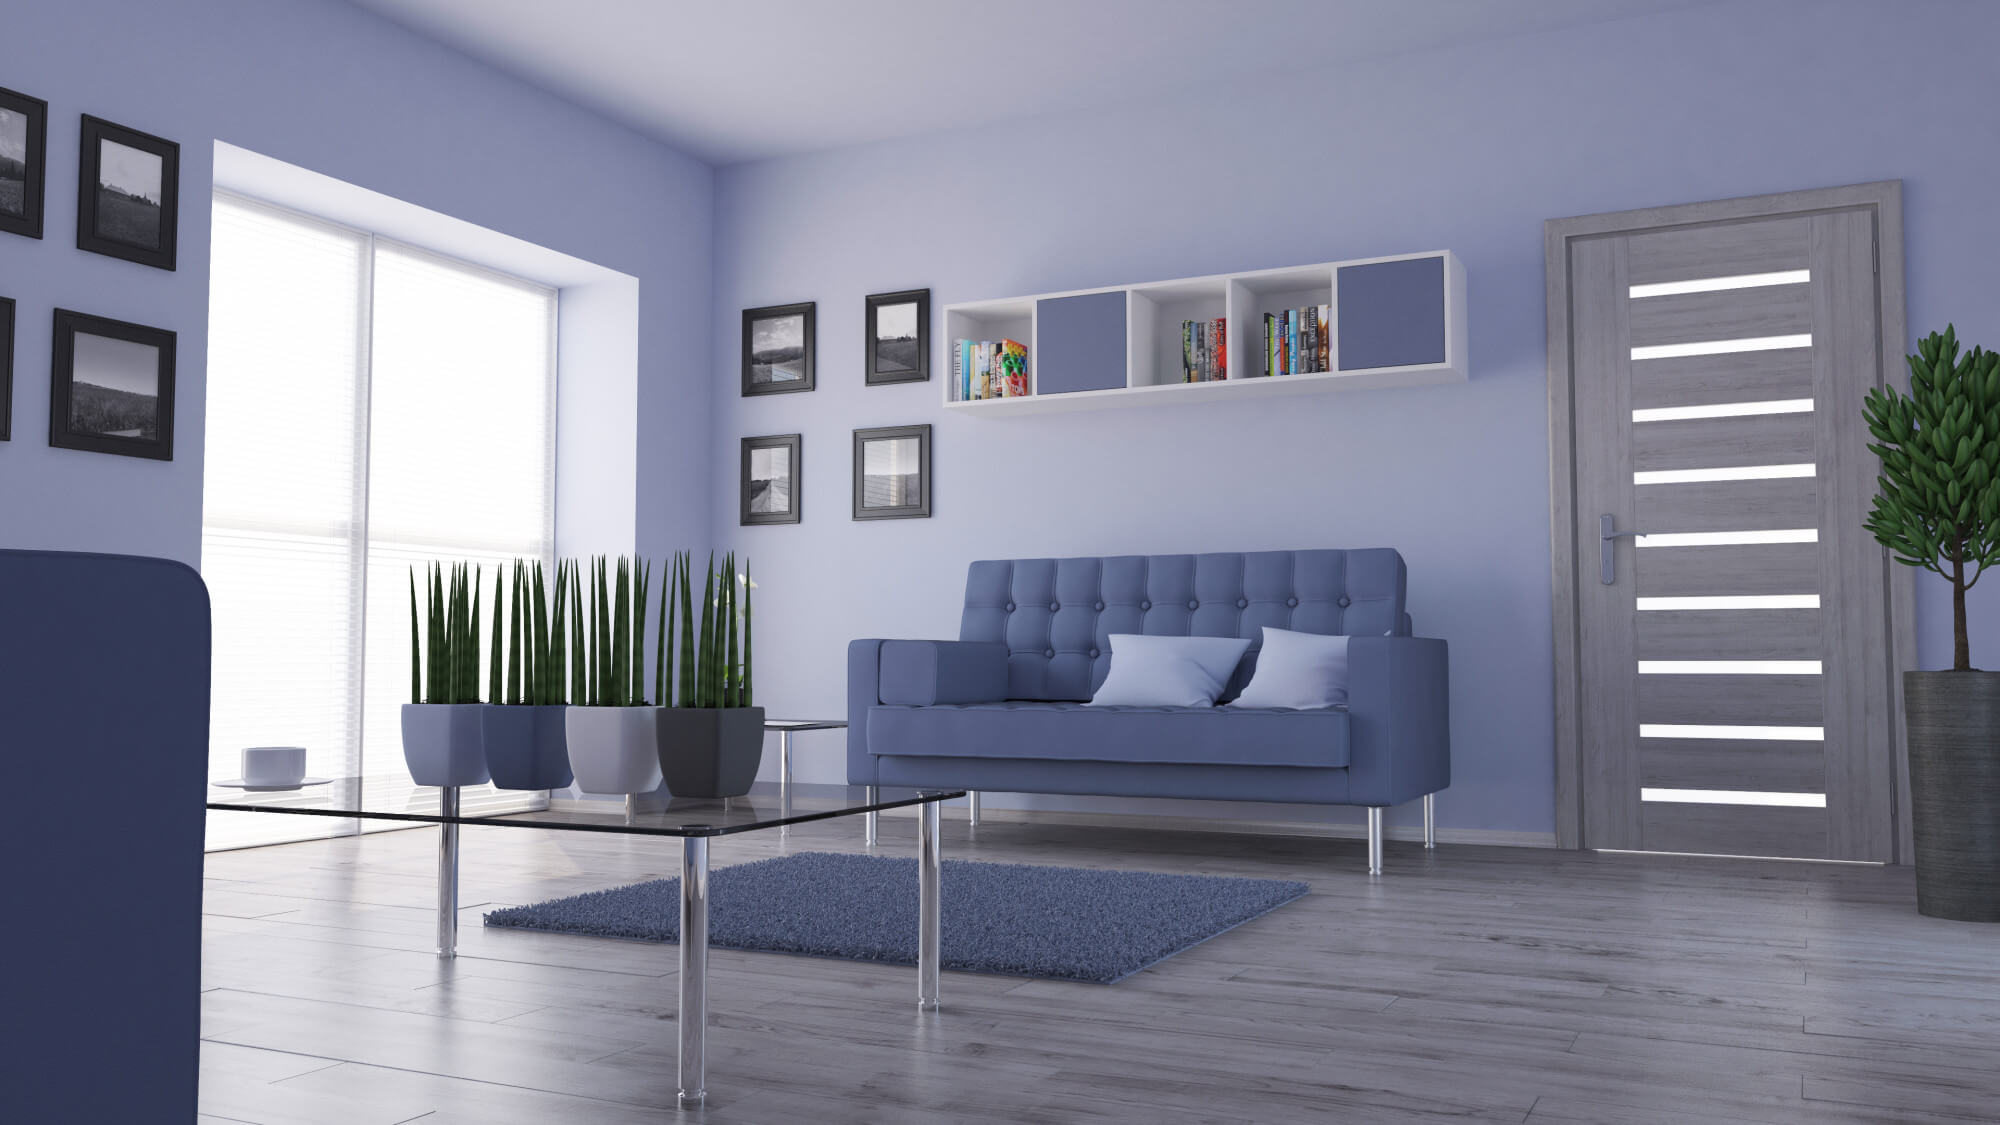 How to Do Modern Home Decor to Make Your Home More Attractive?